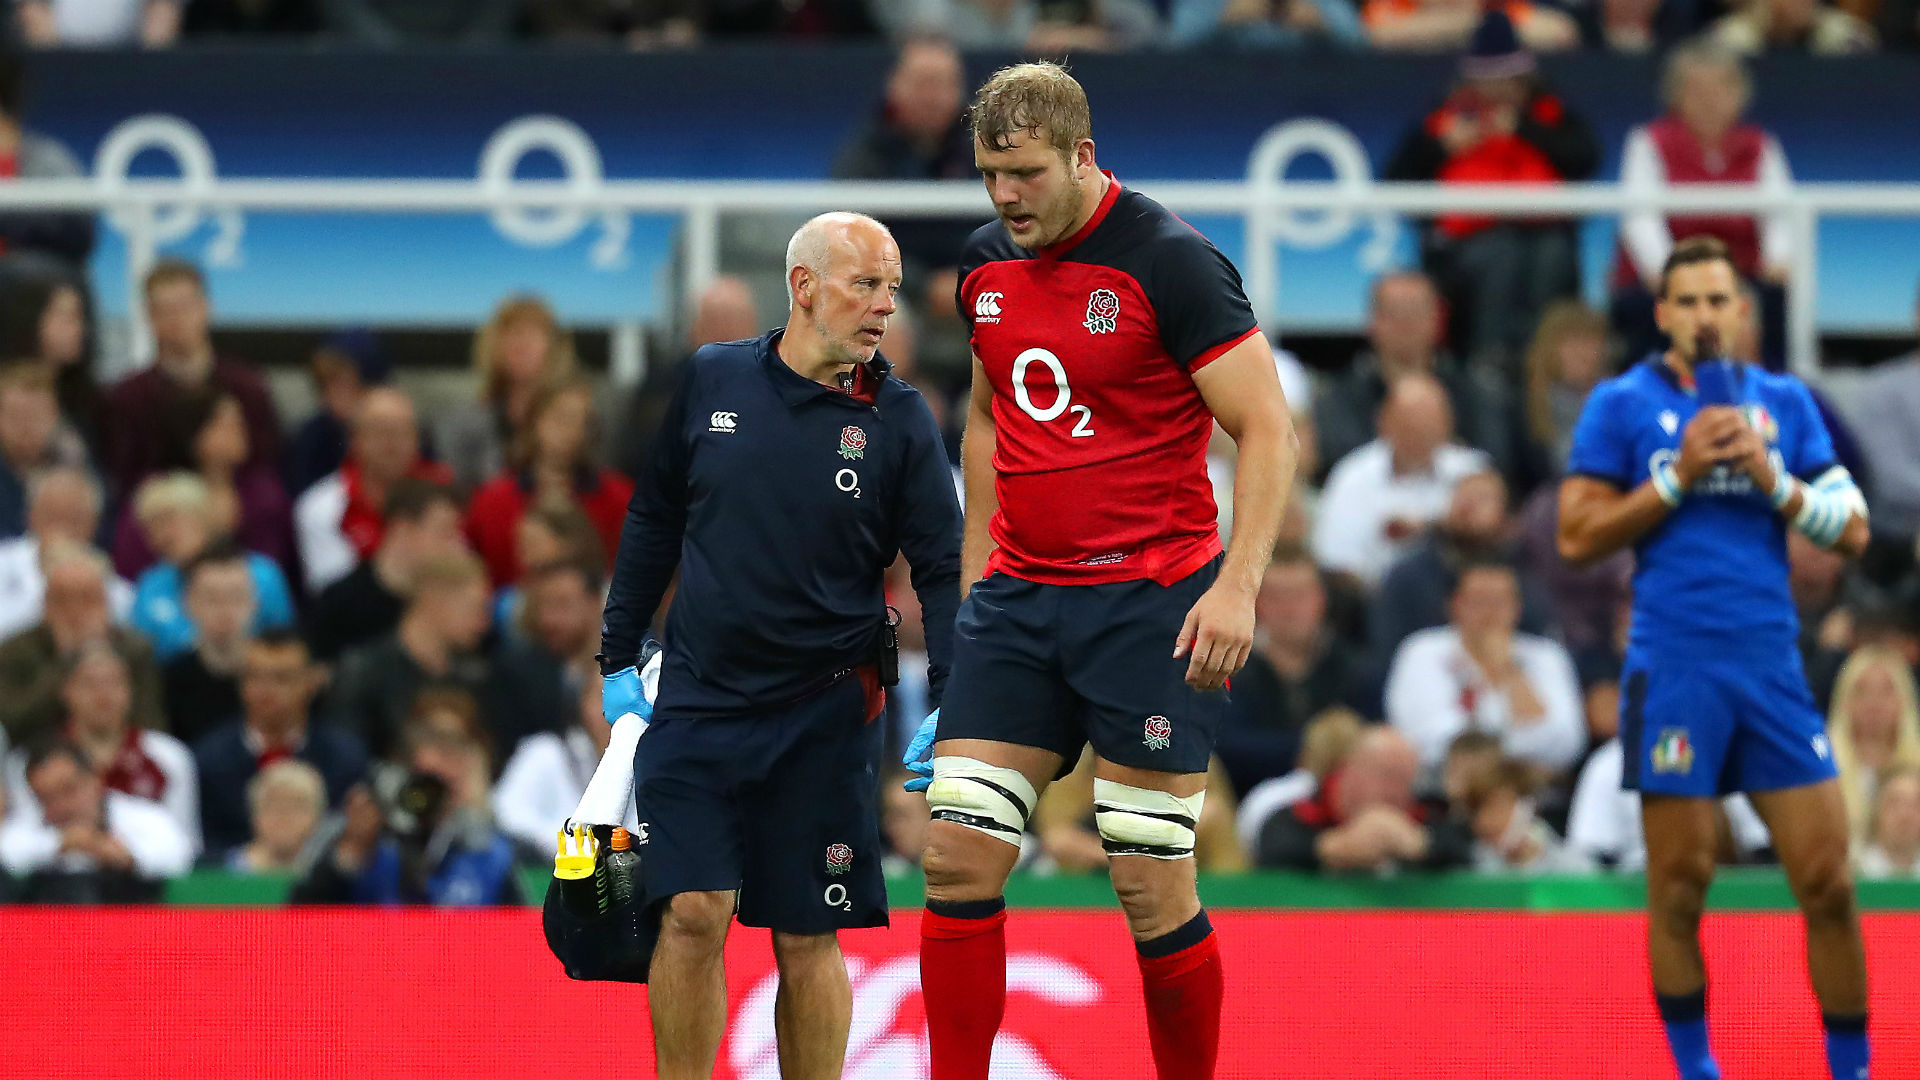 Joe Launchbury and Henry Slade will be able to play in England's Rugby World Cup opener against Tonga, Steve Borthwick has confirmed.